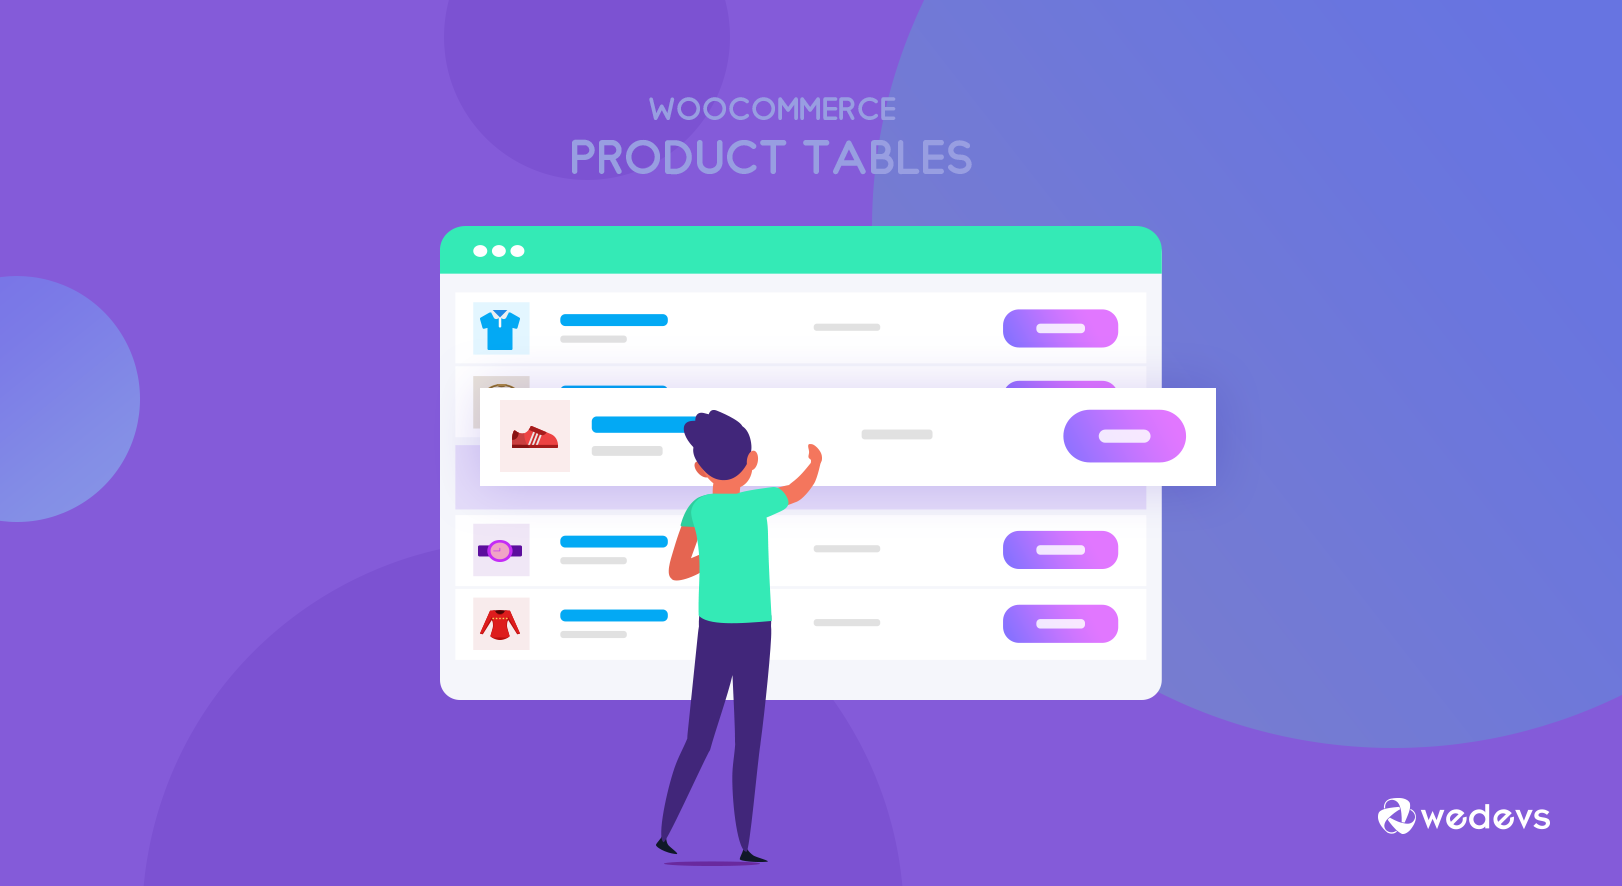 How to add WooCommerce product tables